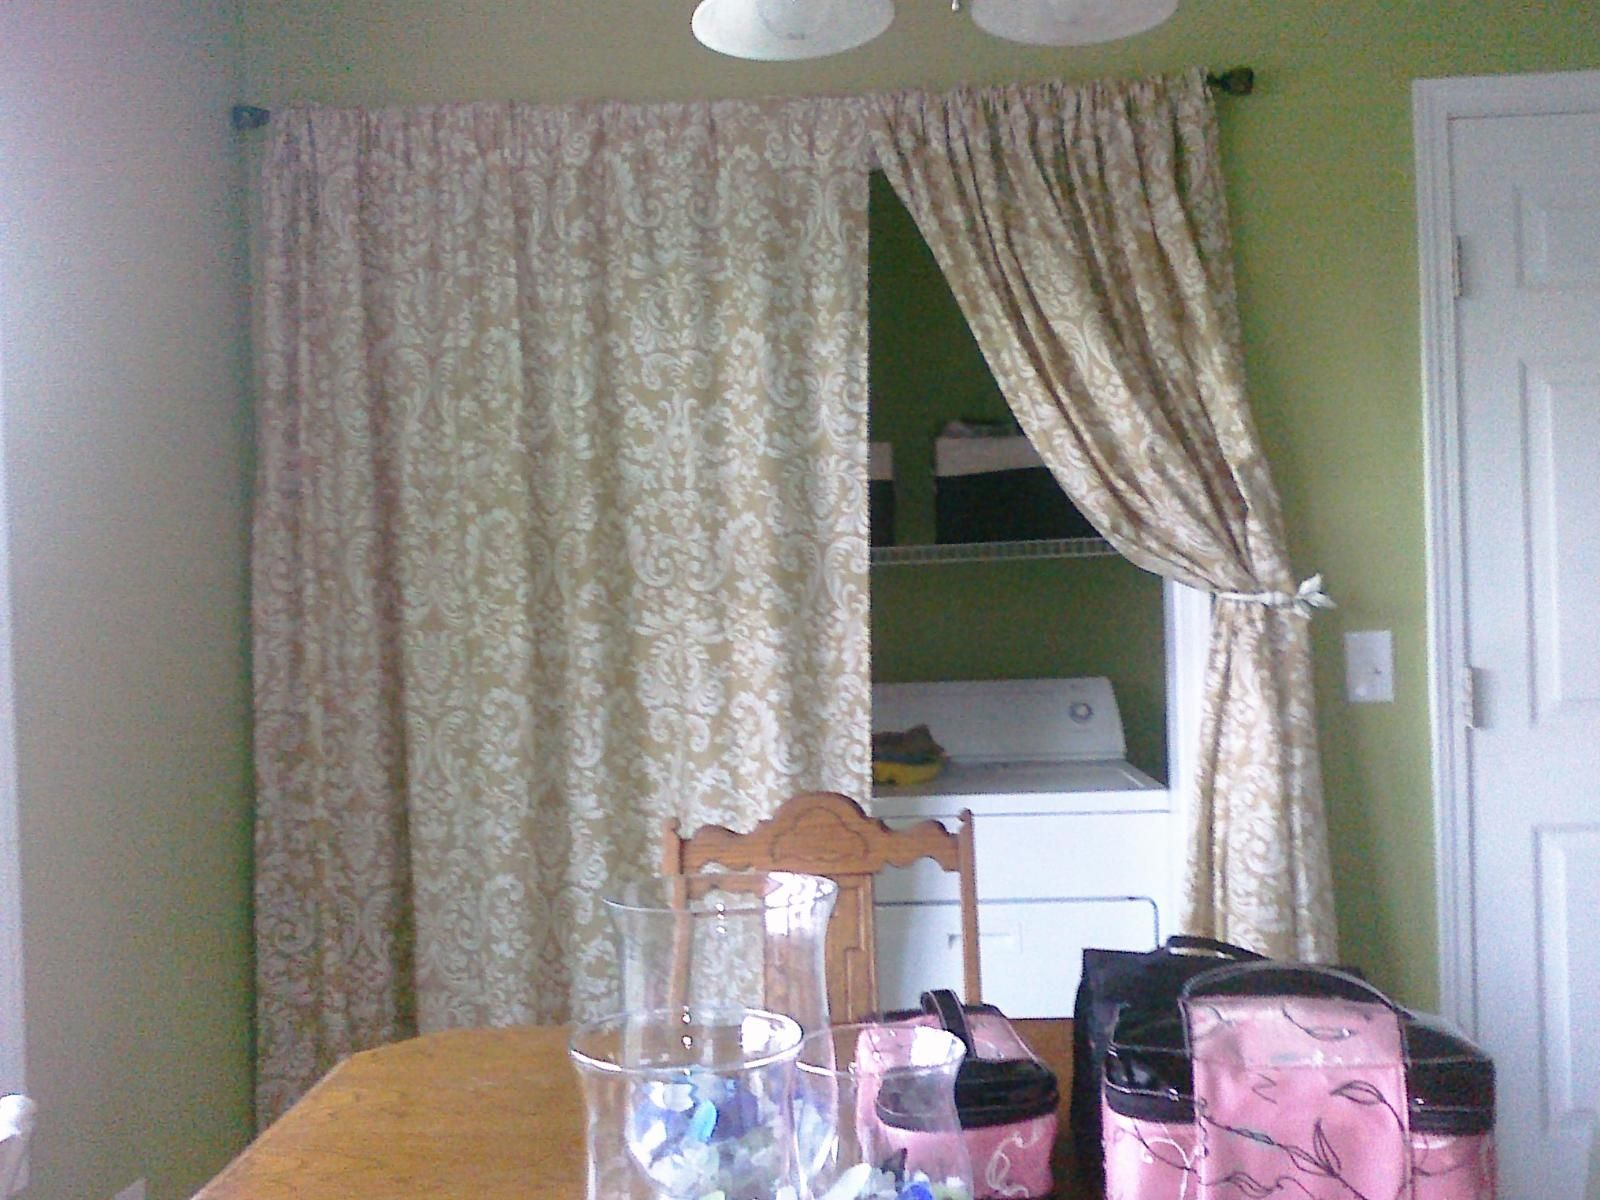 Laundry room curtains - Laundry Room Vintage Laundry Room Curtain Ideas With Decorative Floral Curtain Covering Hidden Space